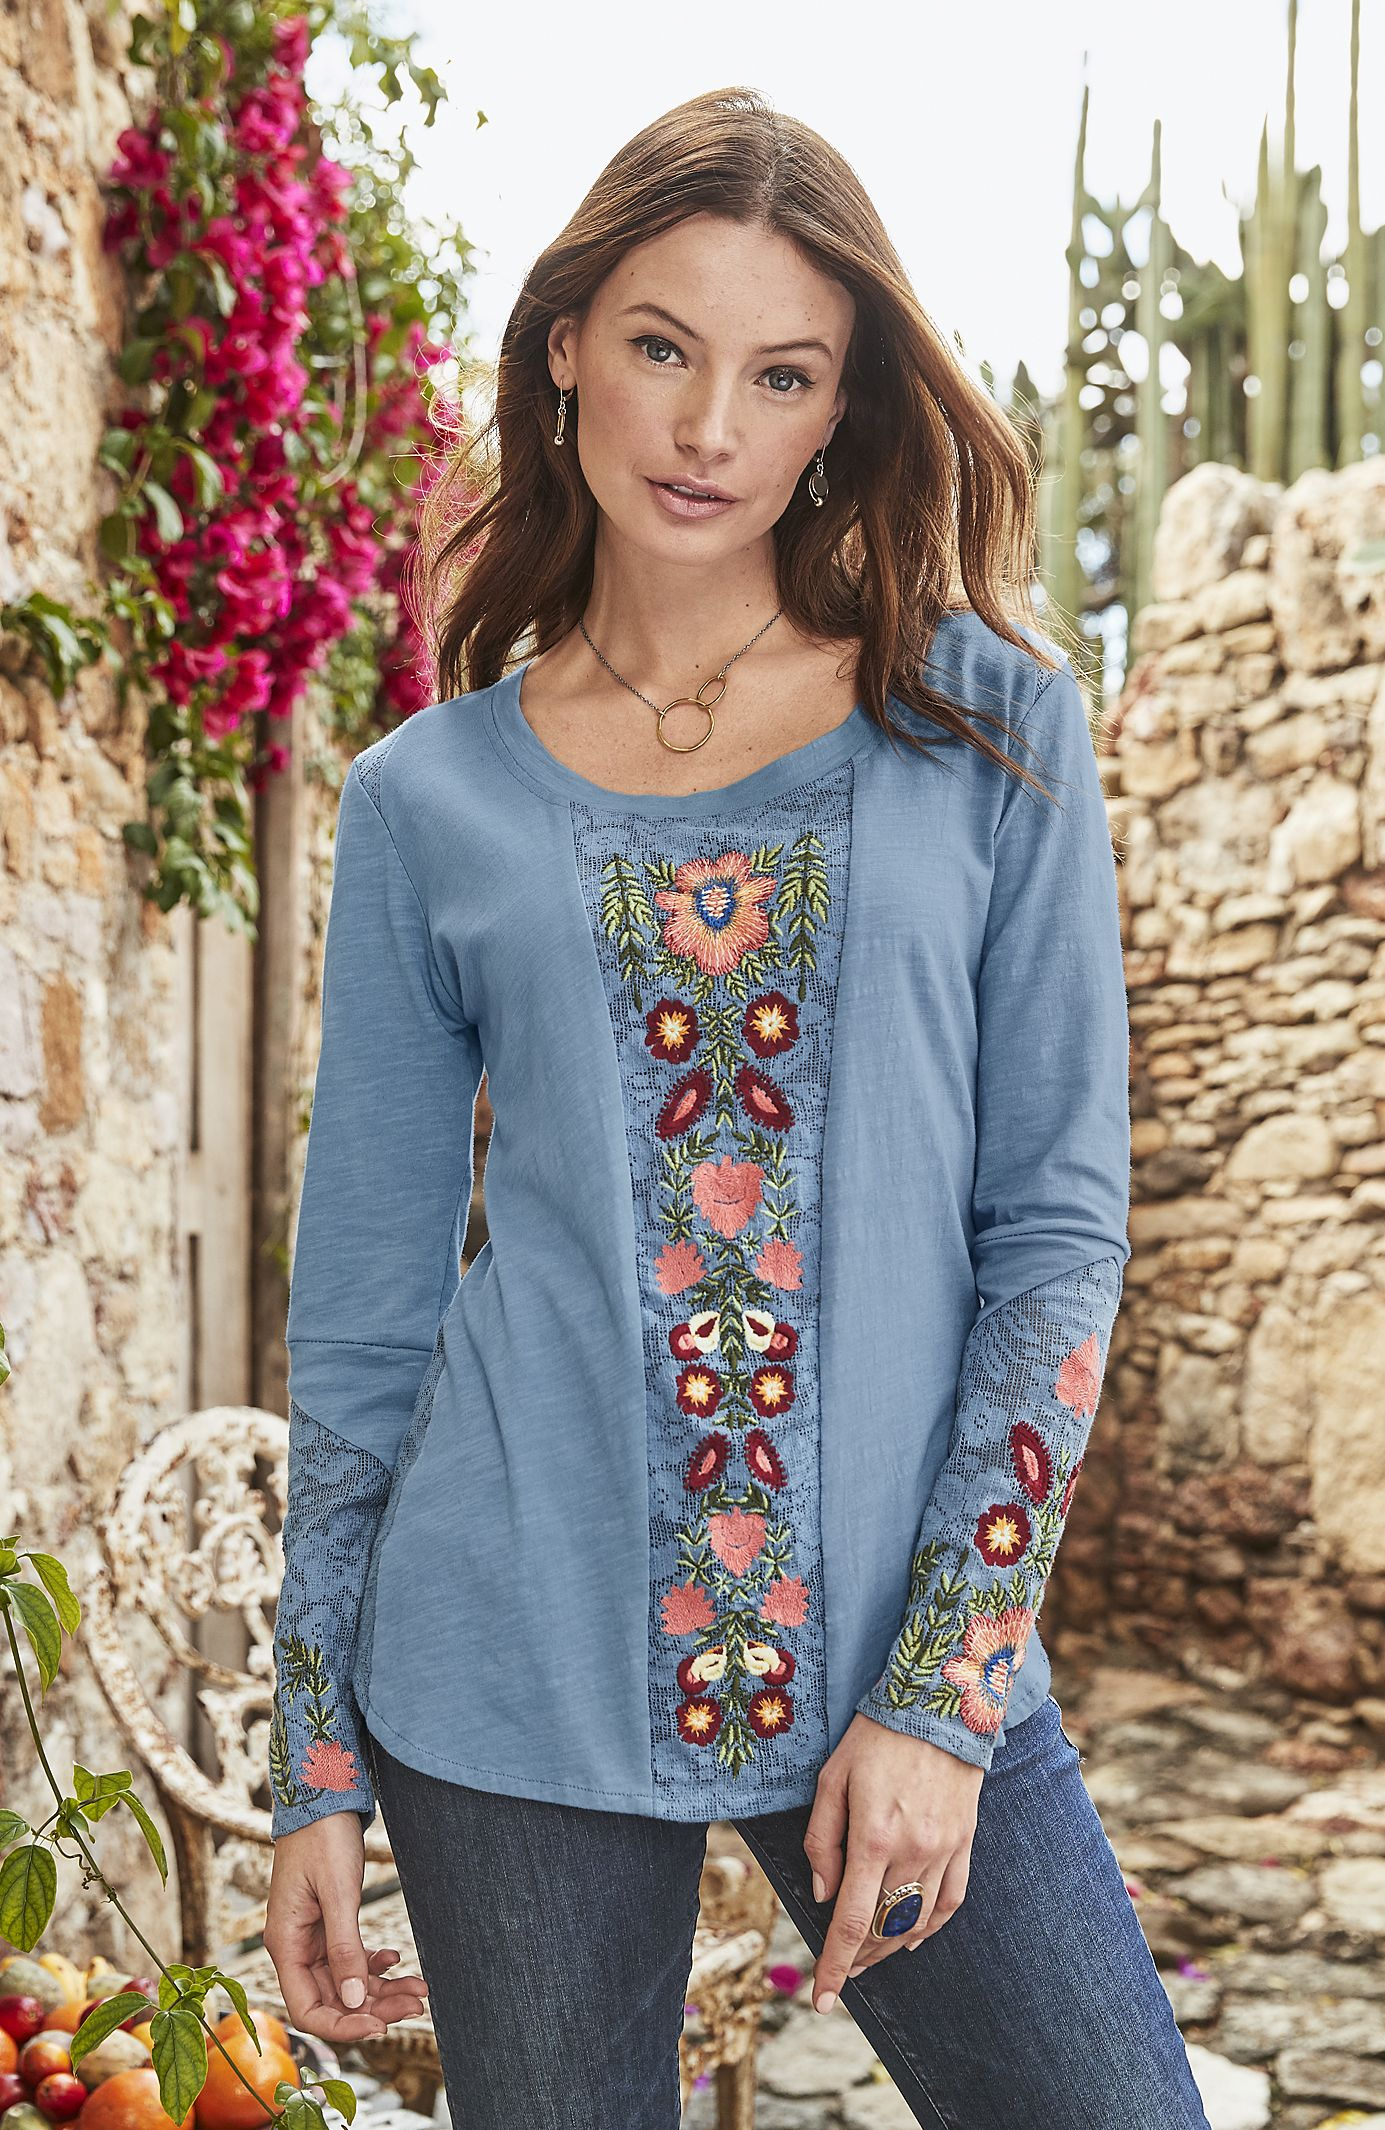 Flowers for abigail tee scoop neck floral tee shirt